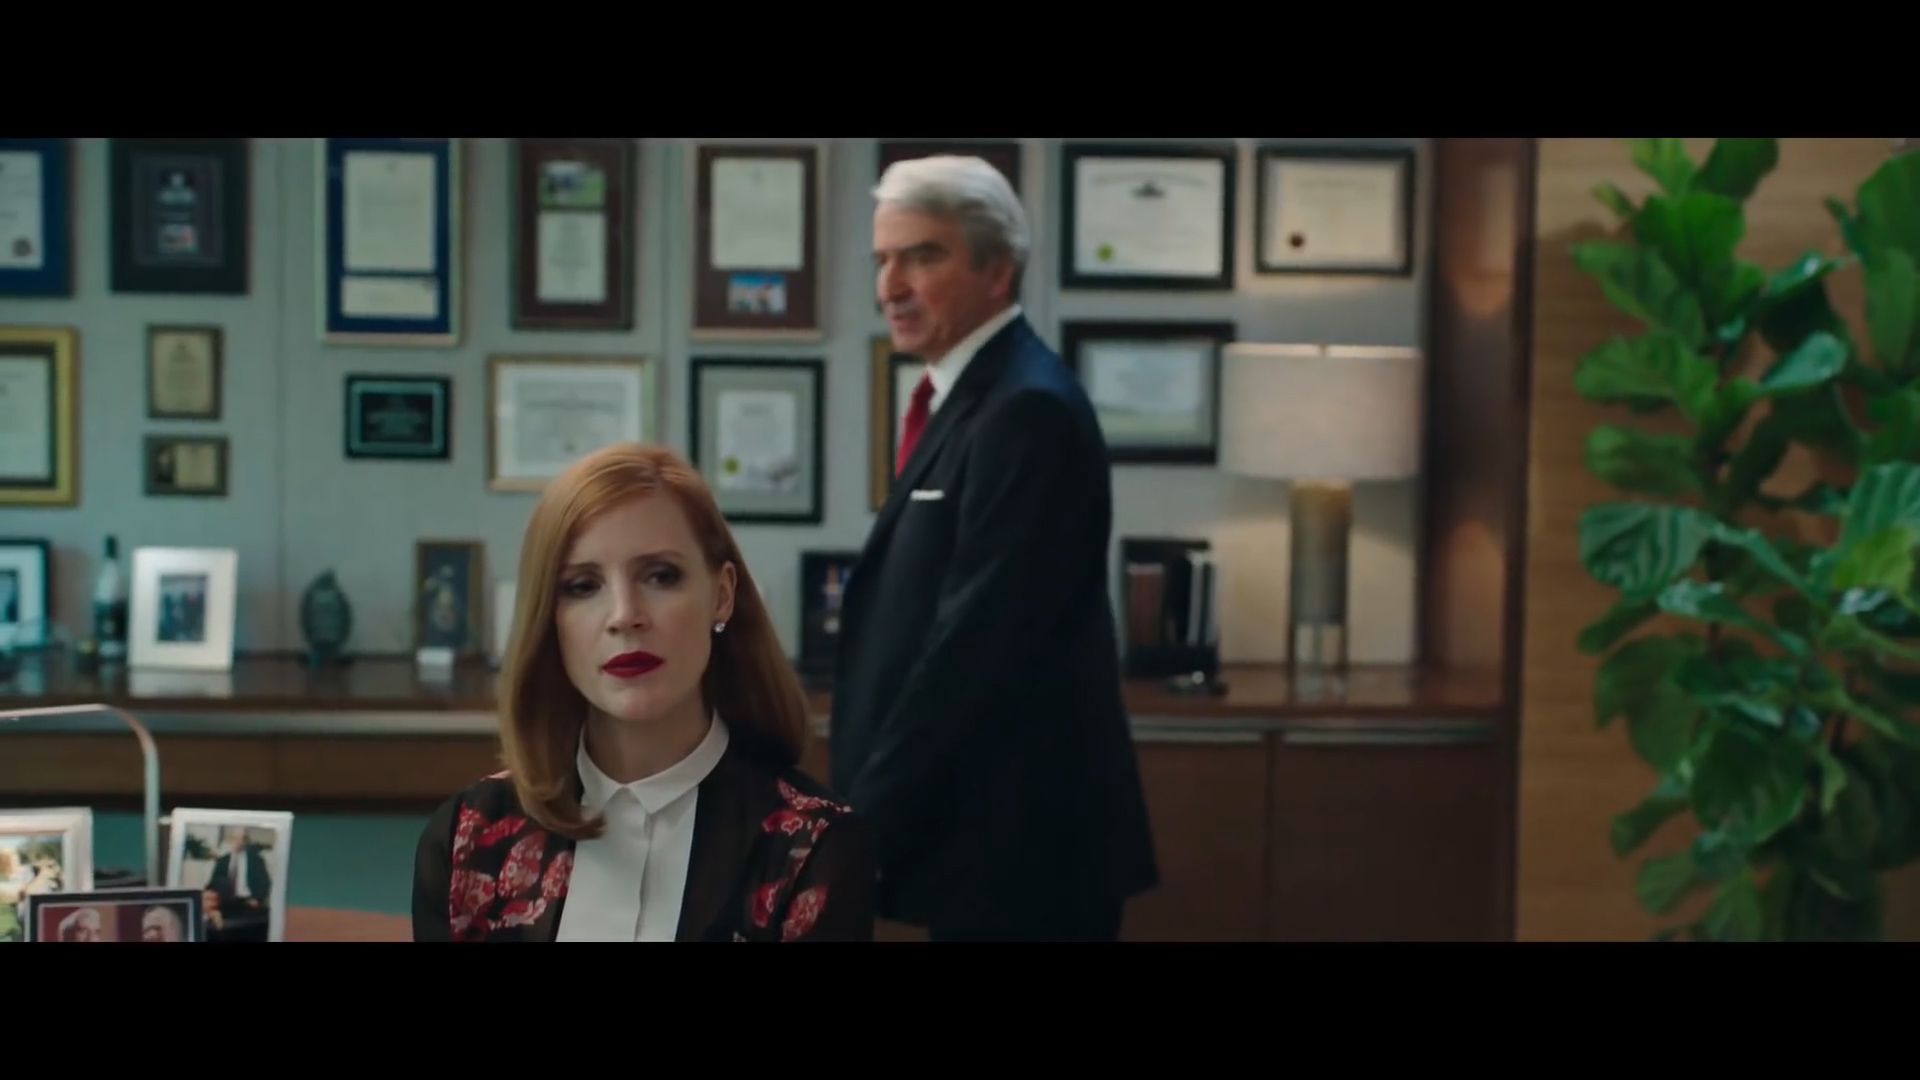 Miss Sloane - I Don't Remember You Caring